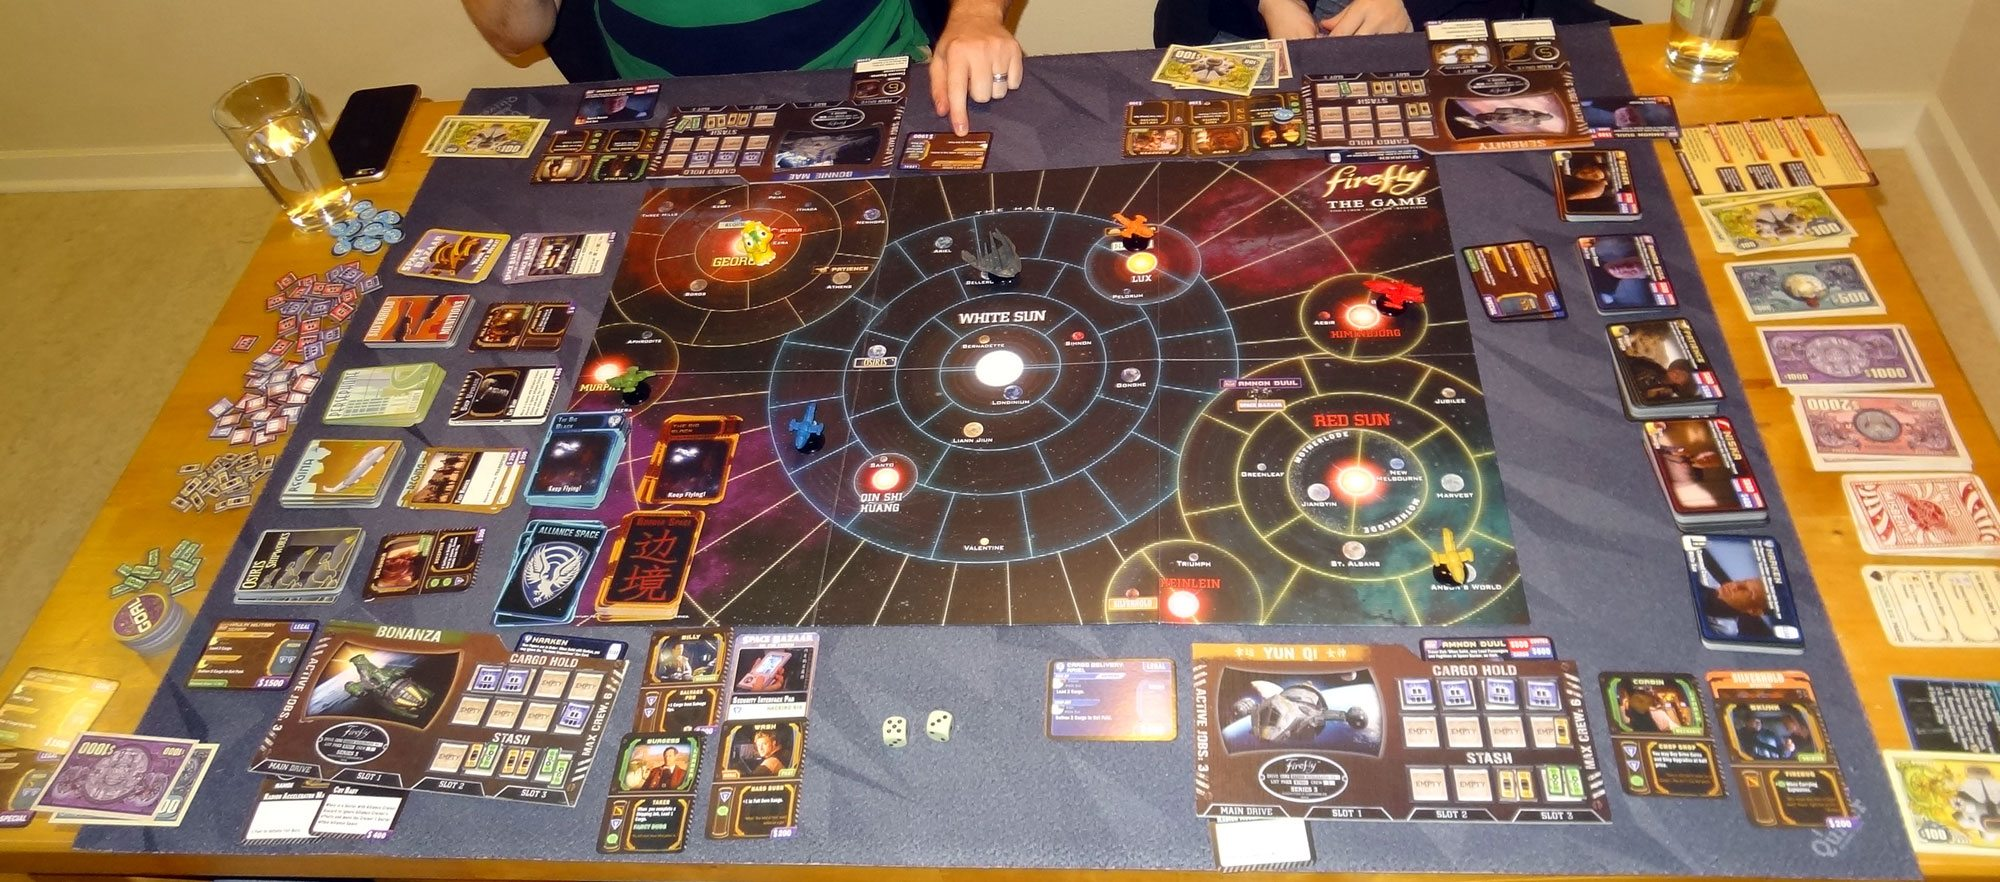 Firefly 4-player game